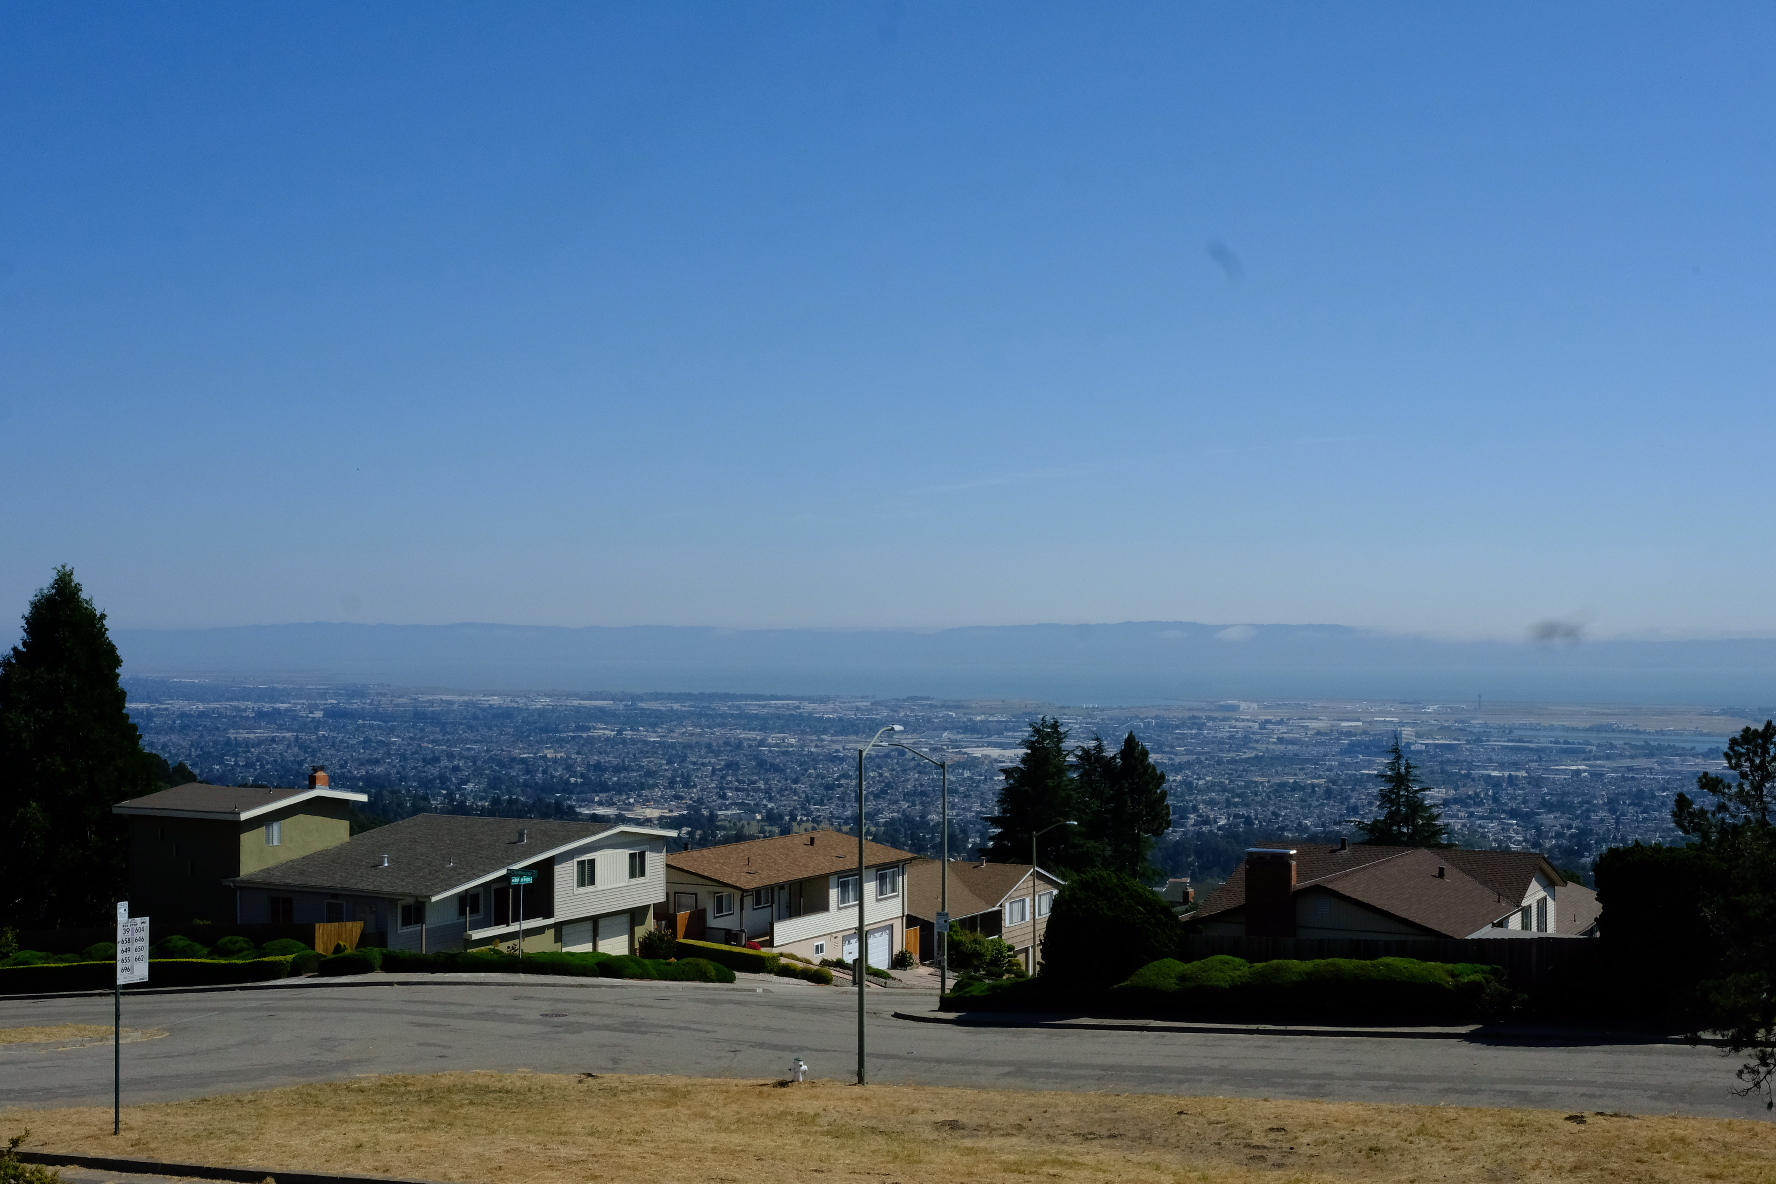 View of East Oakland from Skyline blvd